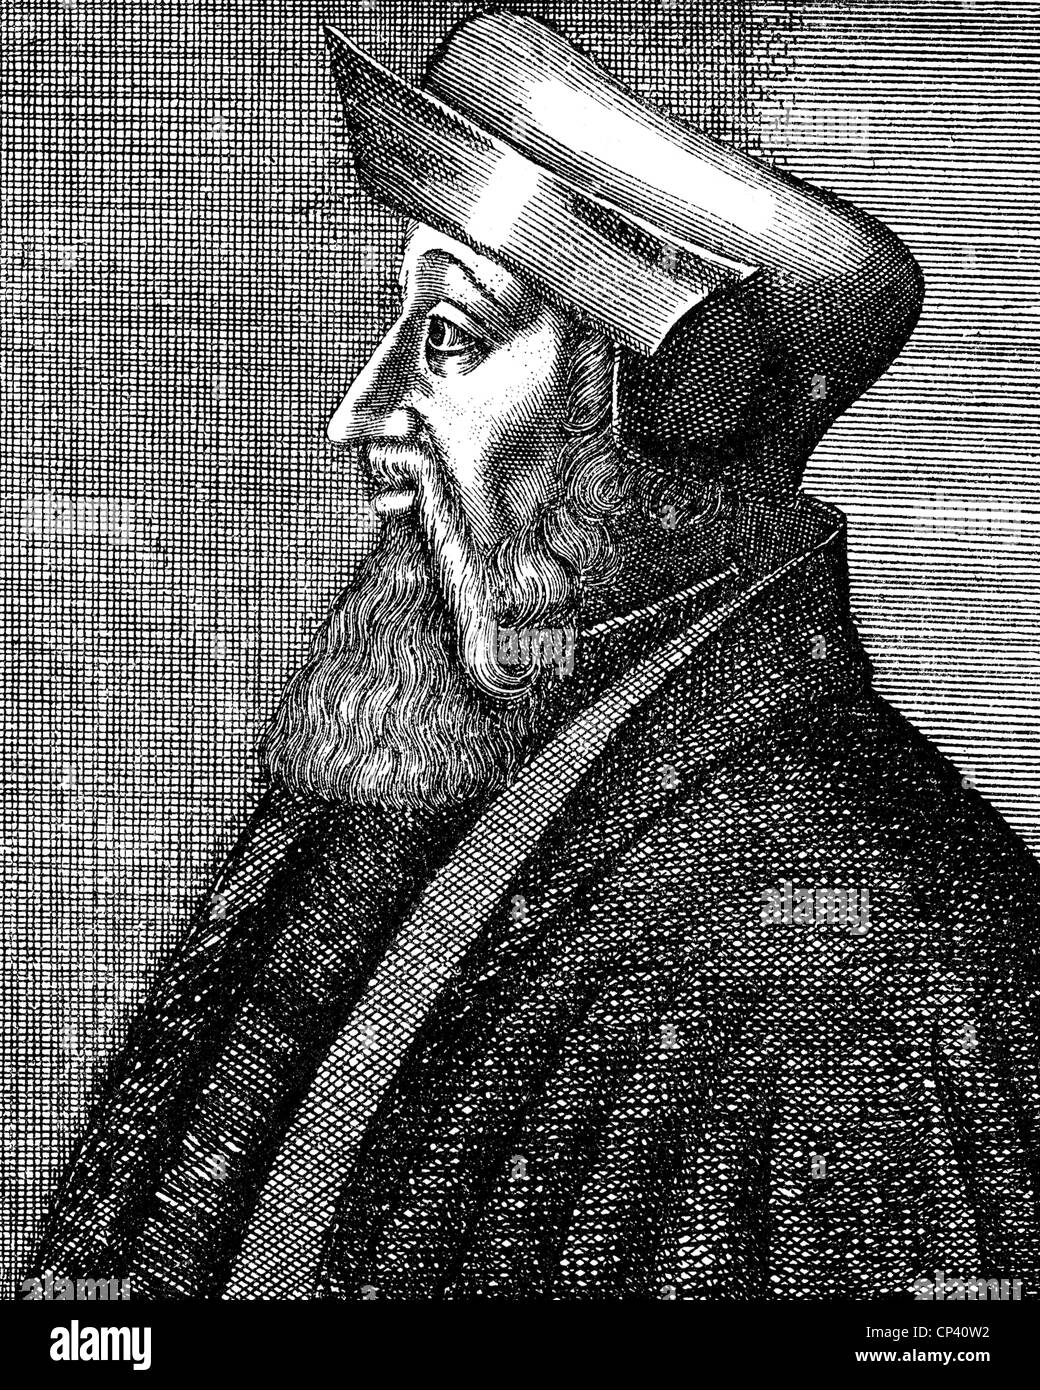 Oecolampadius, Johannes, 1482 - 24.11.1531, German reformer, portrait, copper engraving, 17th century, , Artist's - Stock Image